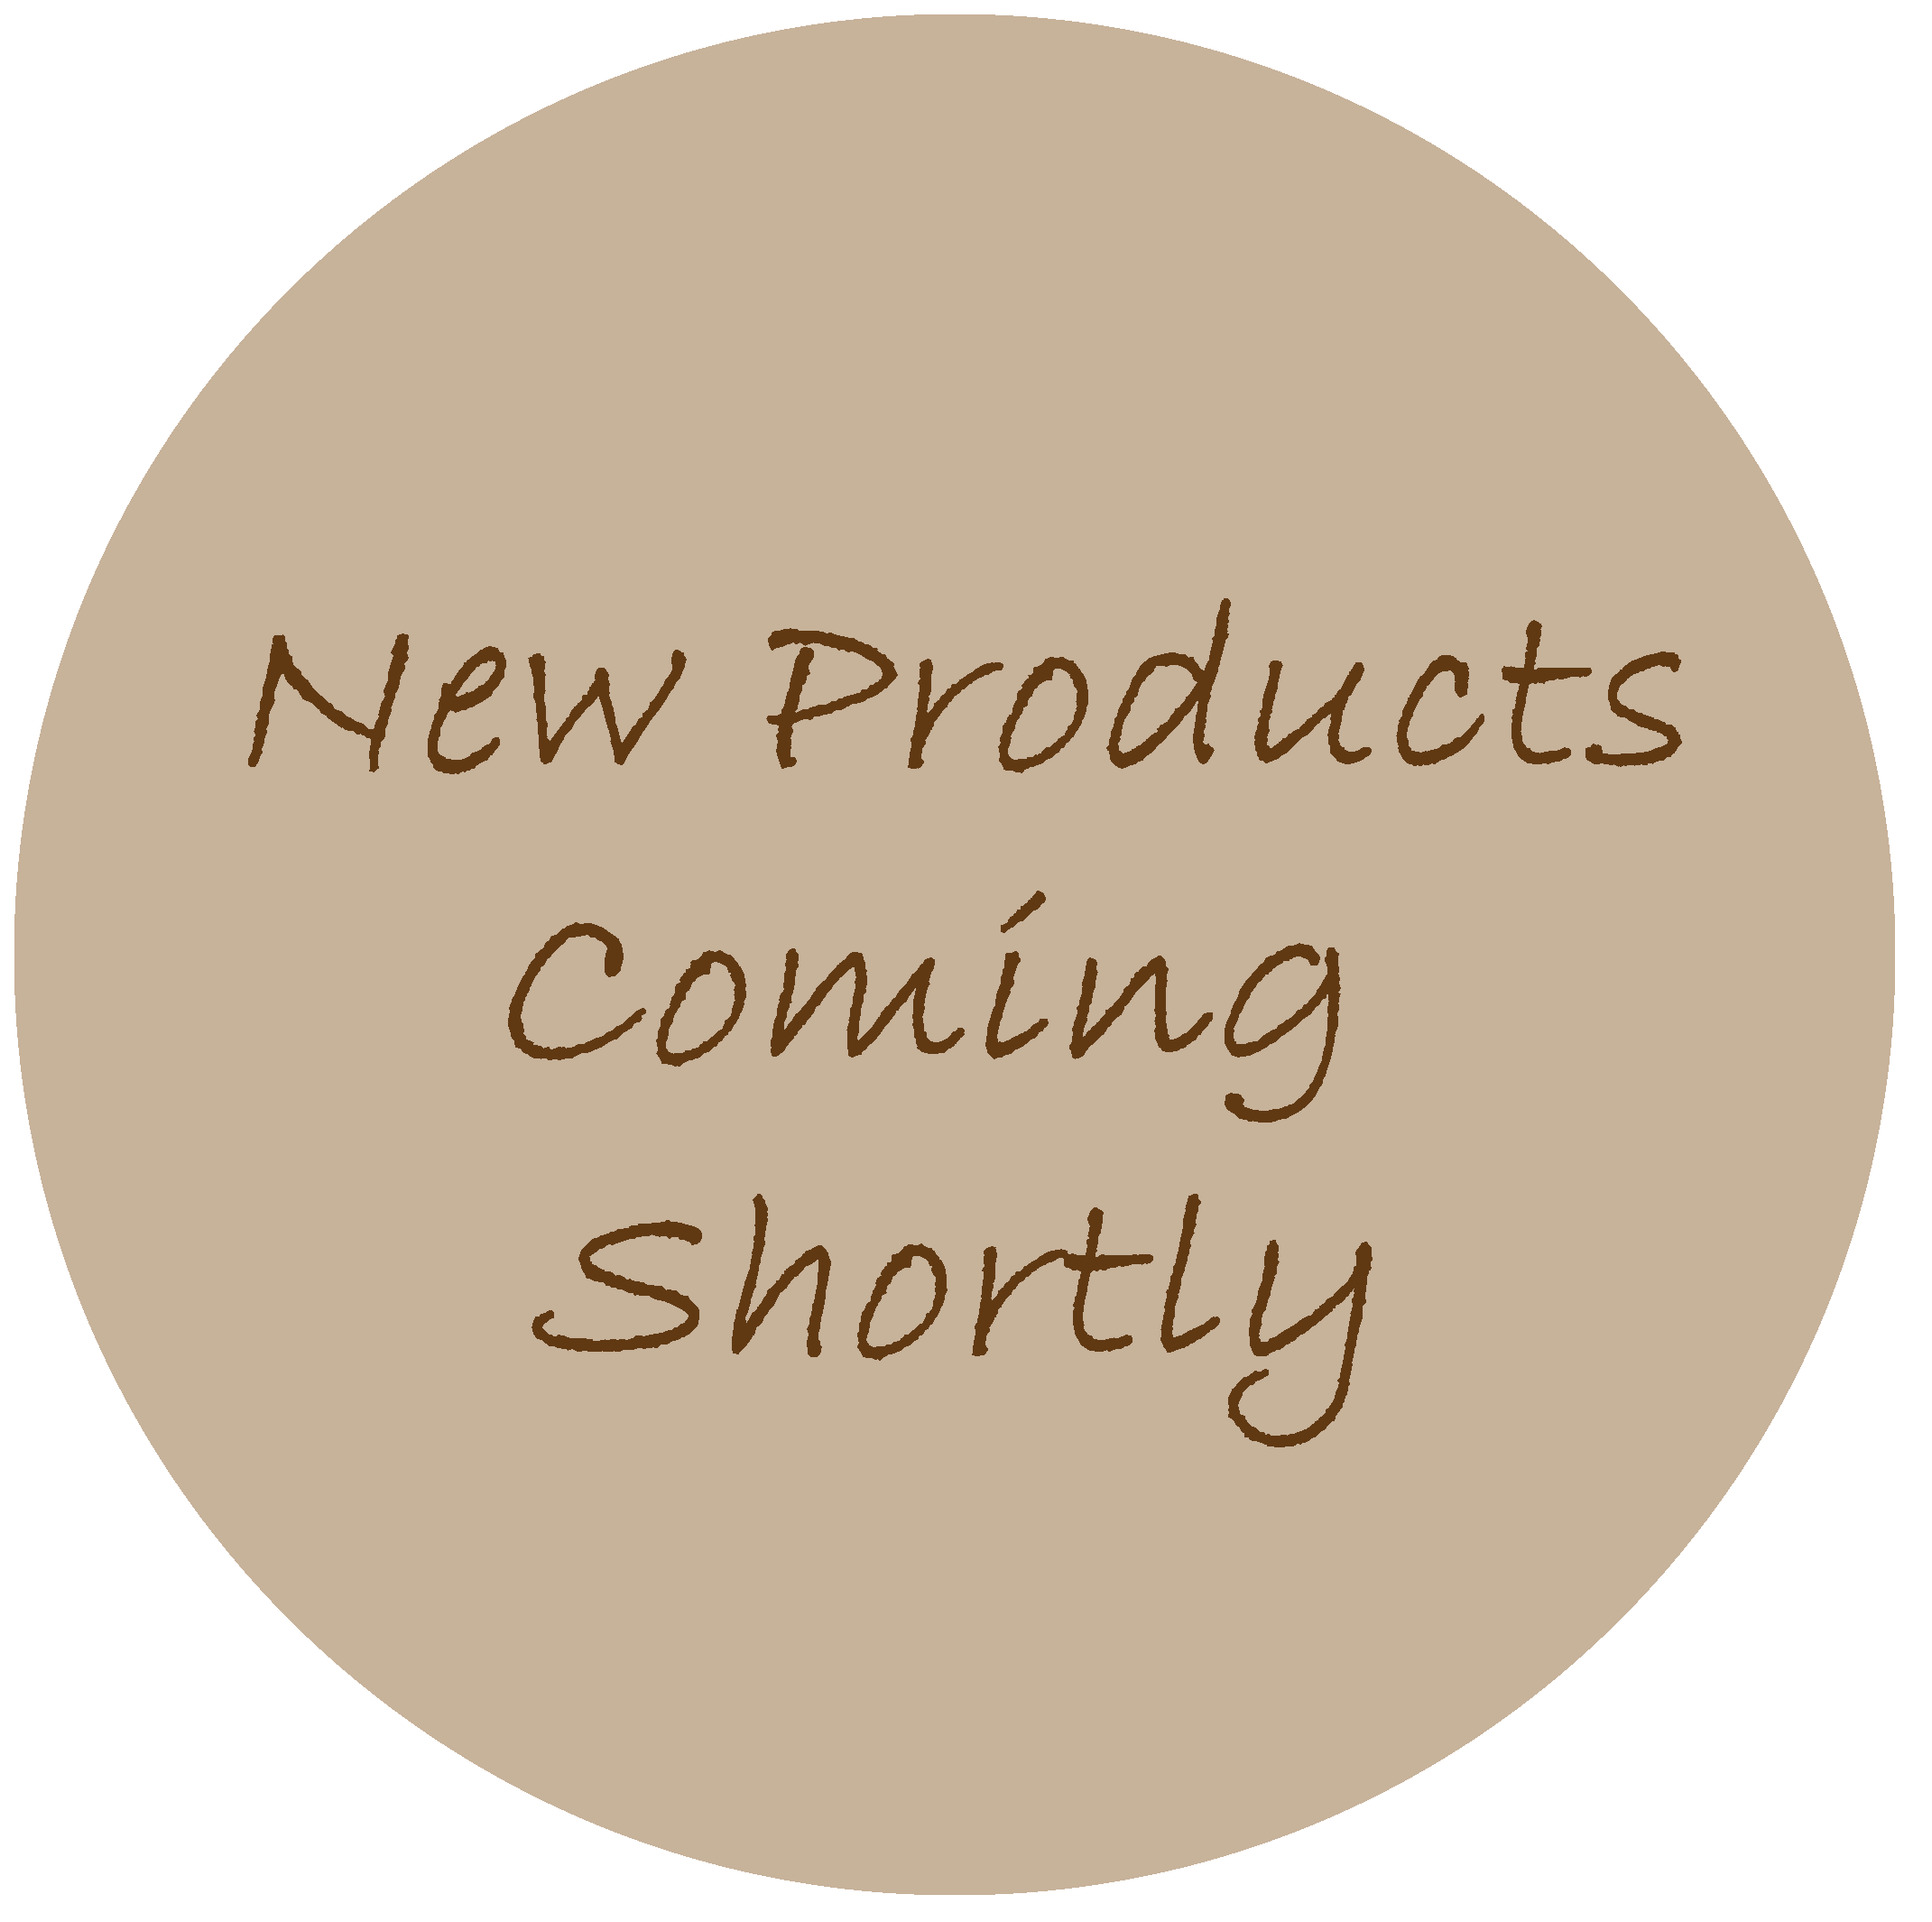 New Products Coming Shortly